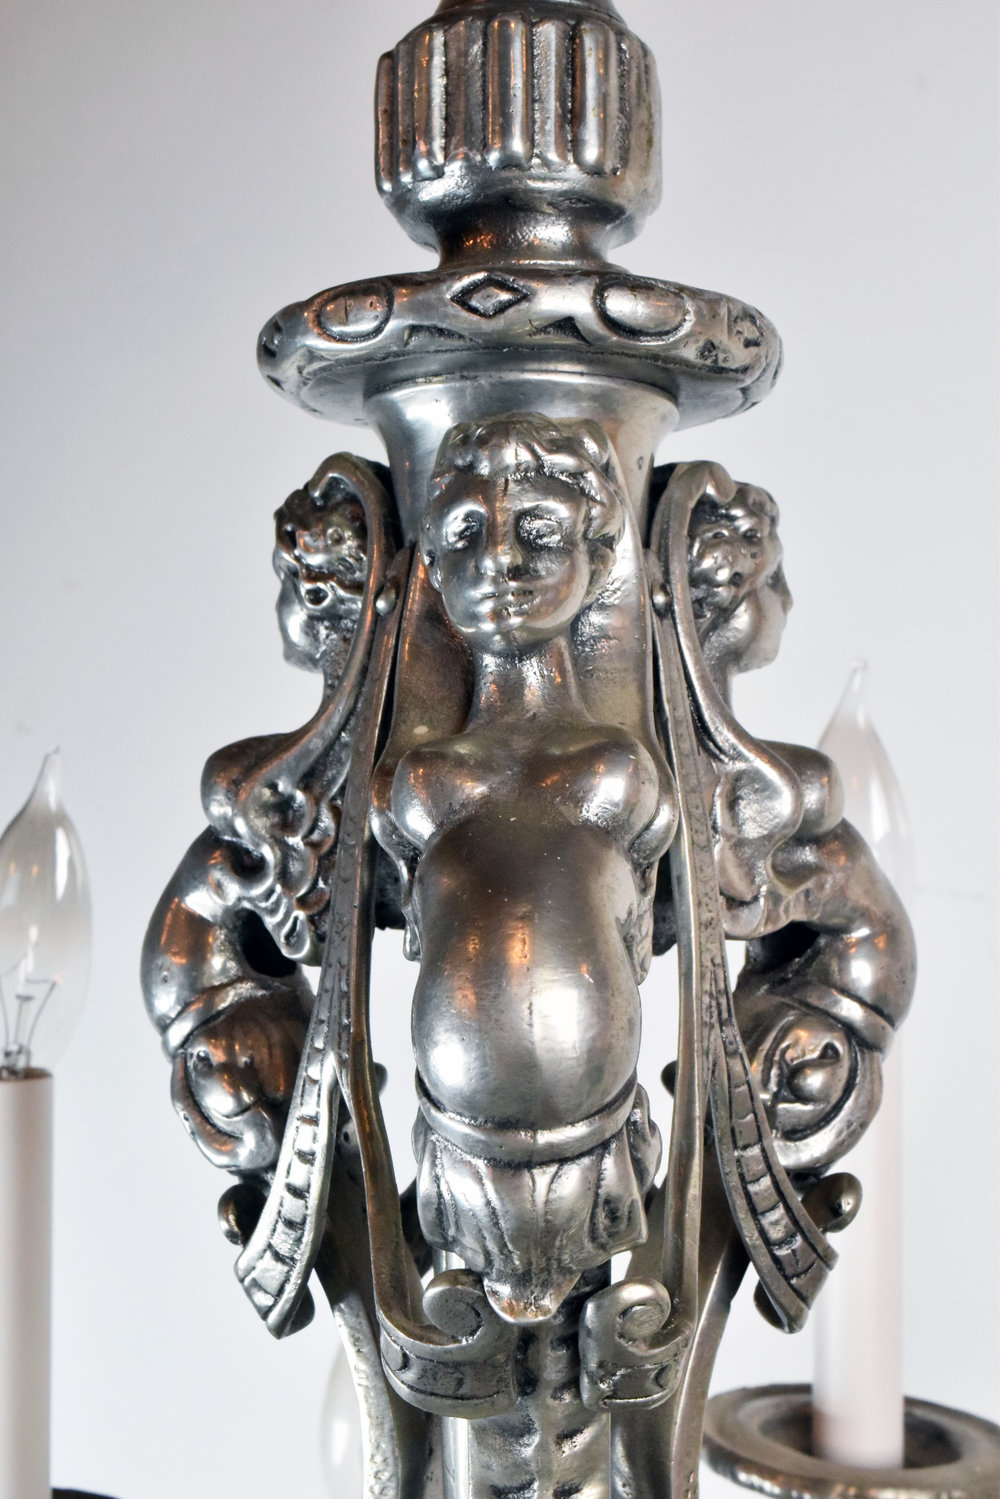 47165-cast-12-candle-silver-chandelier-detail-top.JPG